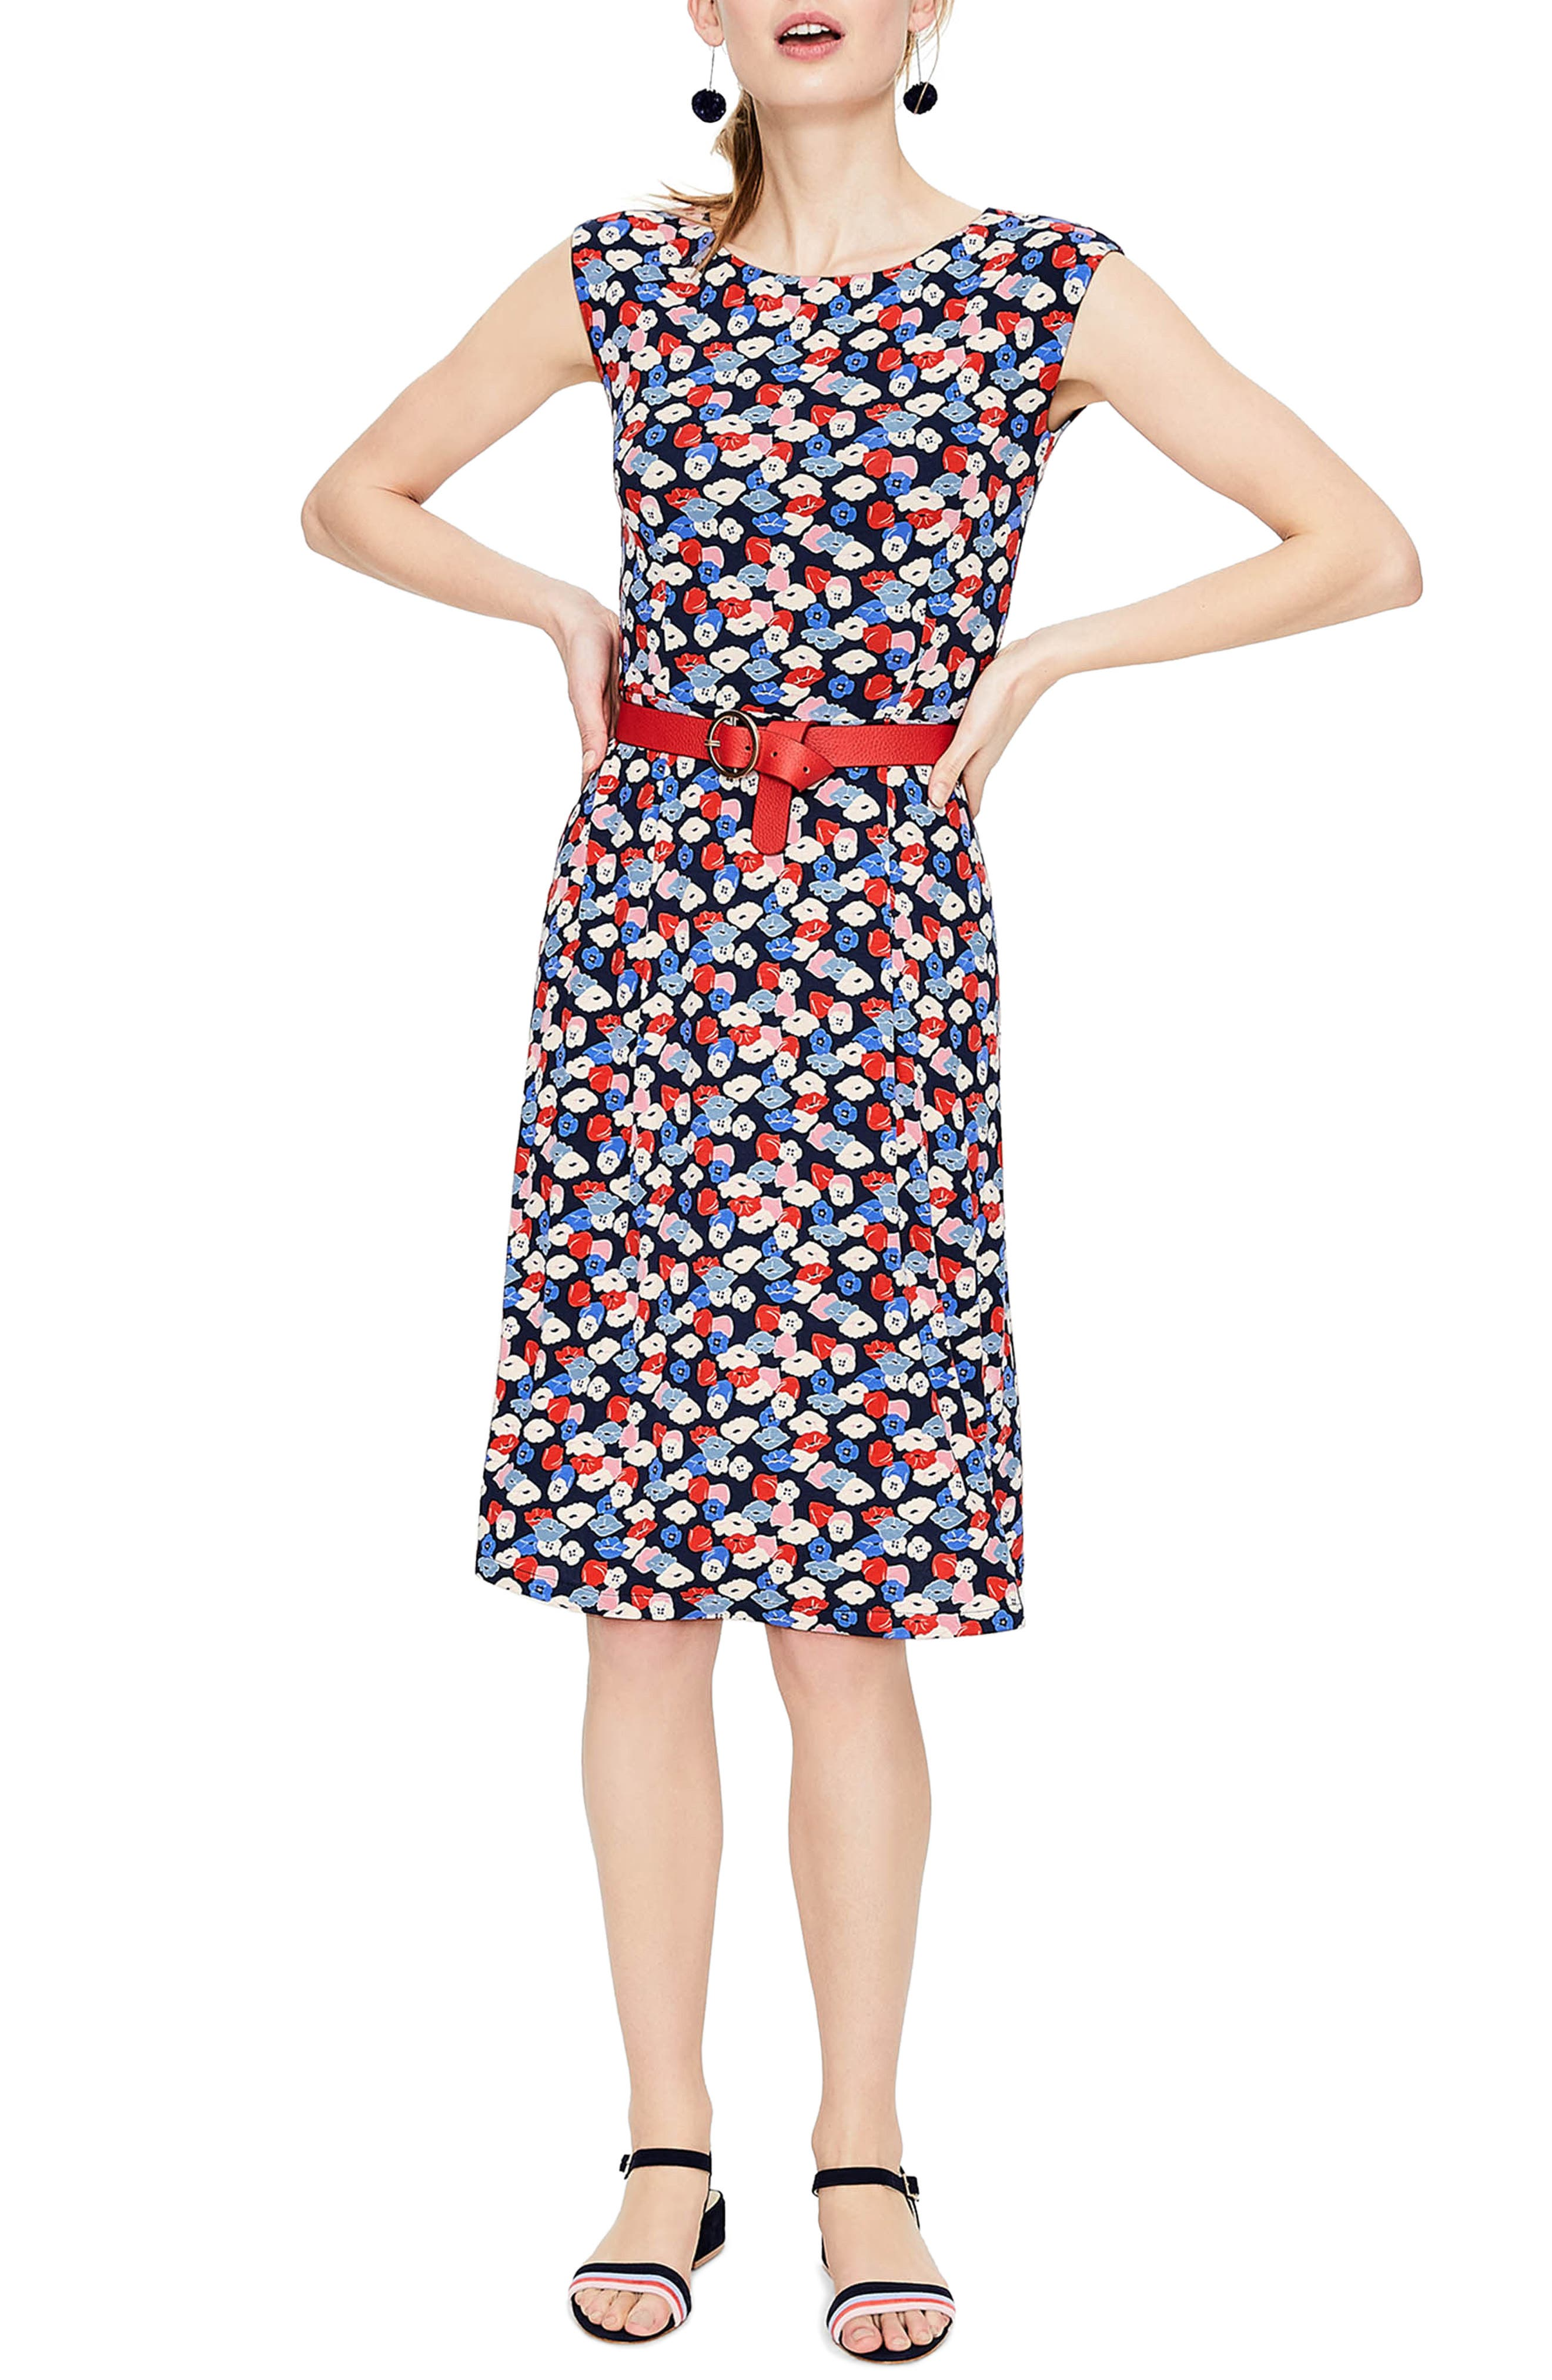 Marina Belted Floral Jersey Dress,                             Main thumbnail 1, color,                             486